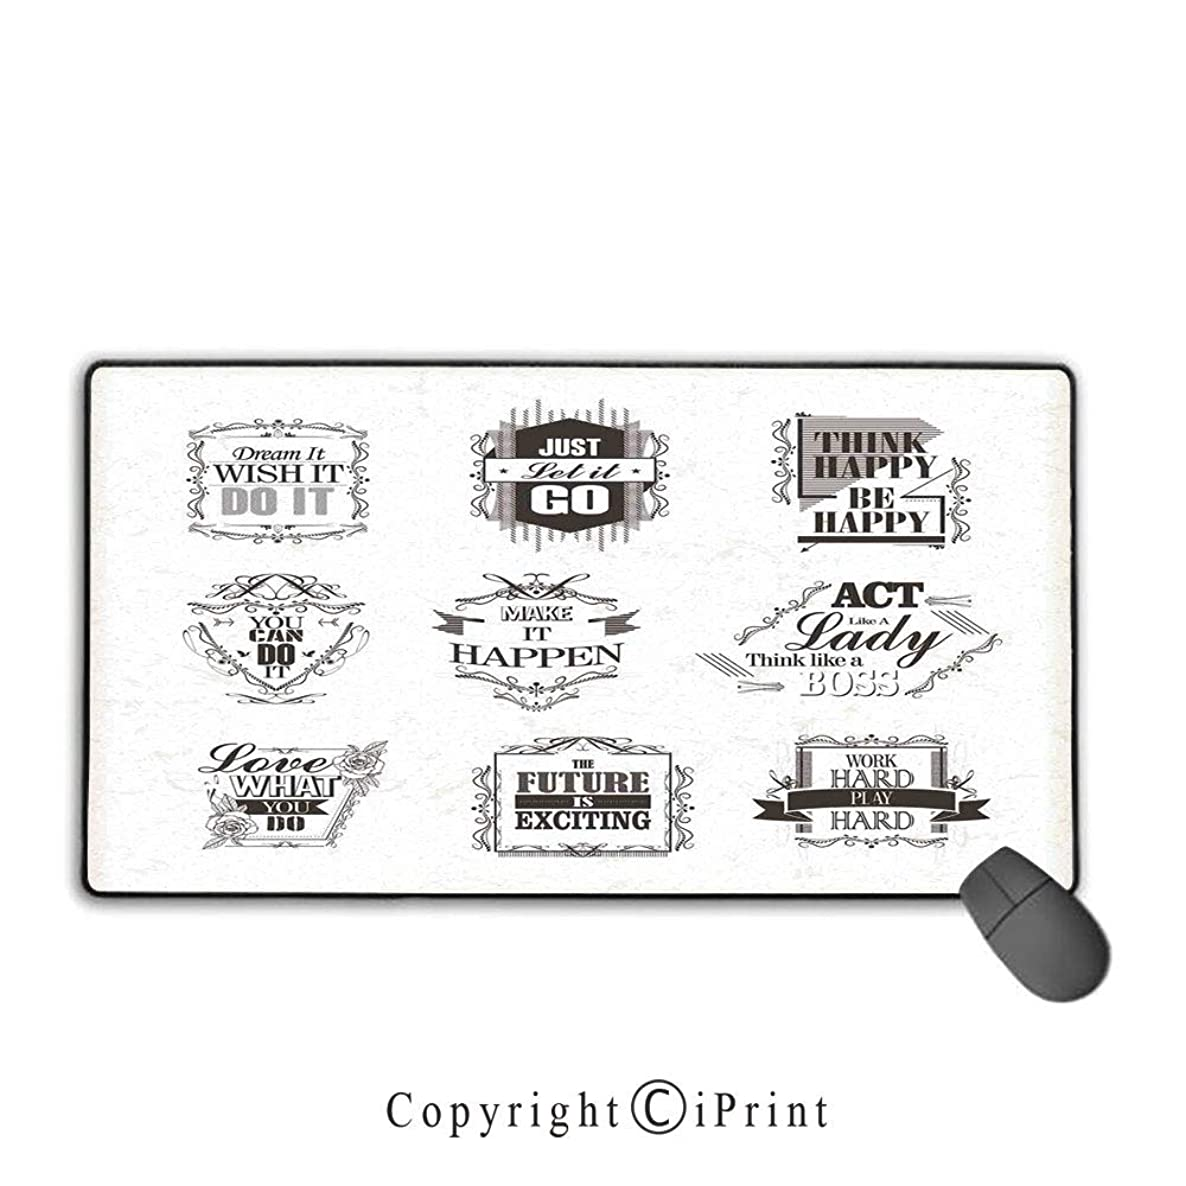 Stitched Edge Mouse pad,Quote,Positive Quotes Optimism on The Way to Success Monochromic Classic Artwork Print,Beige Brown, Non-Slip Rubber Base,15.8